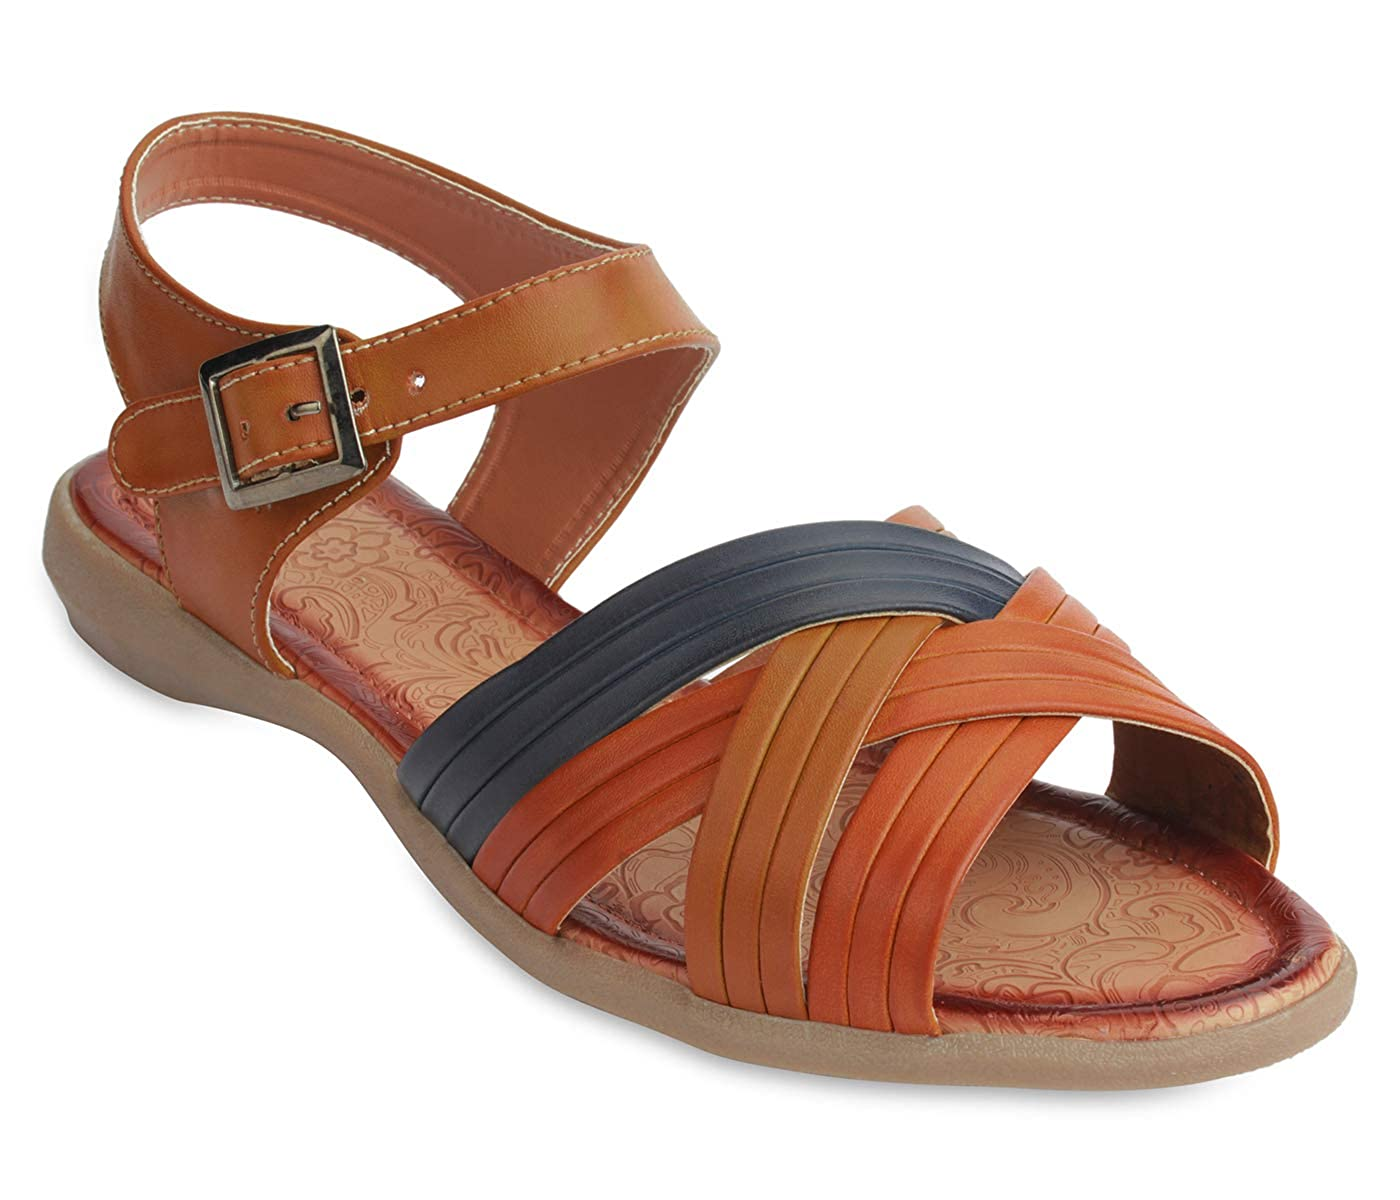 23862b691c8 peterpapa Casual Sandals for Women - Fashionable   Comfortable Sandals for  Girls  Amazon.in  Shoes   Handbags